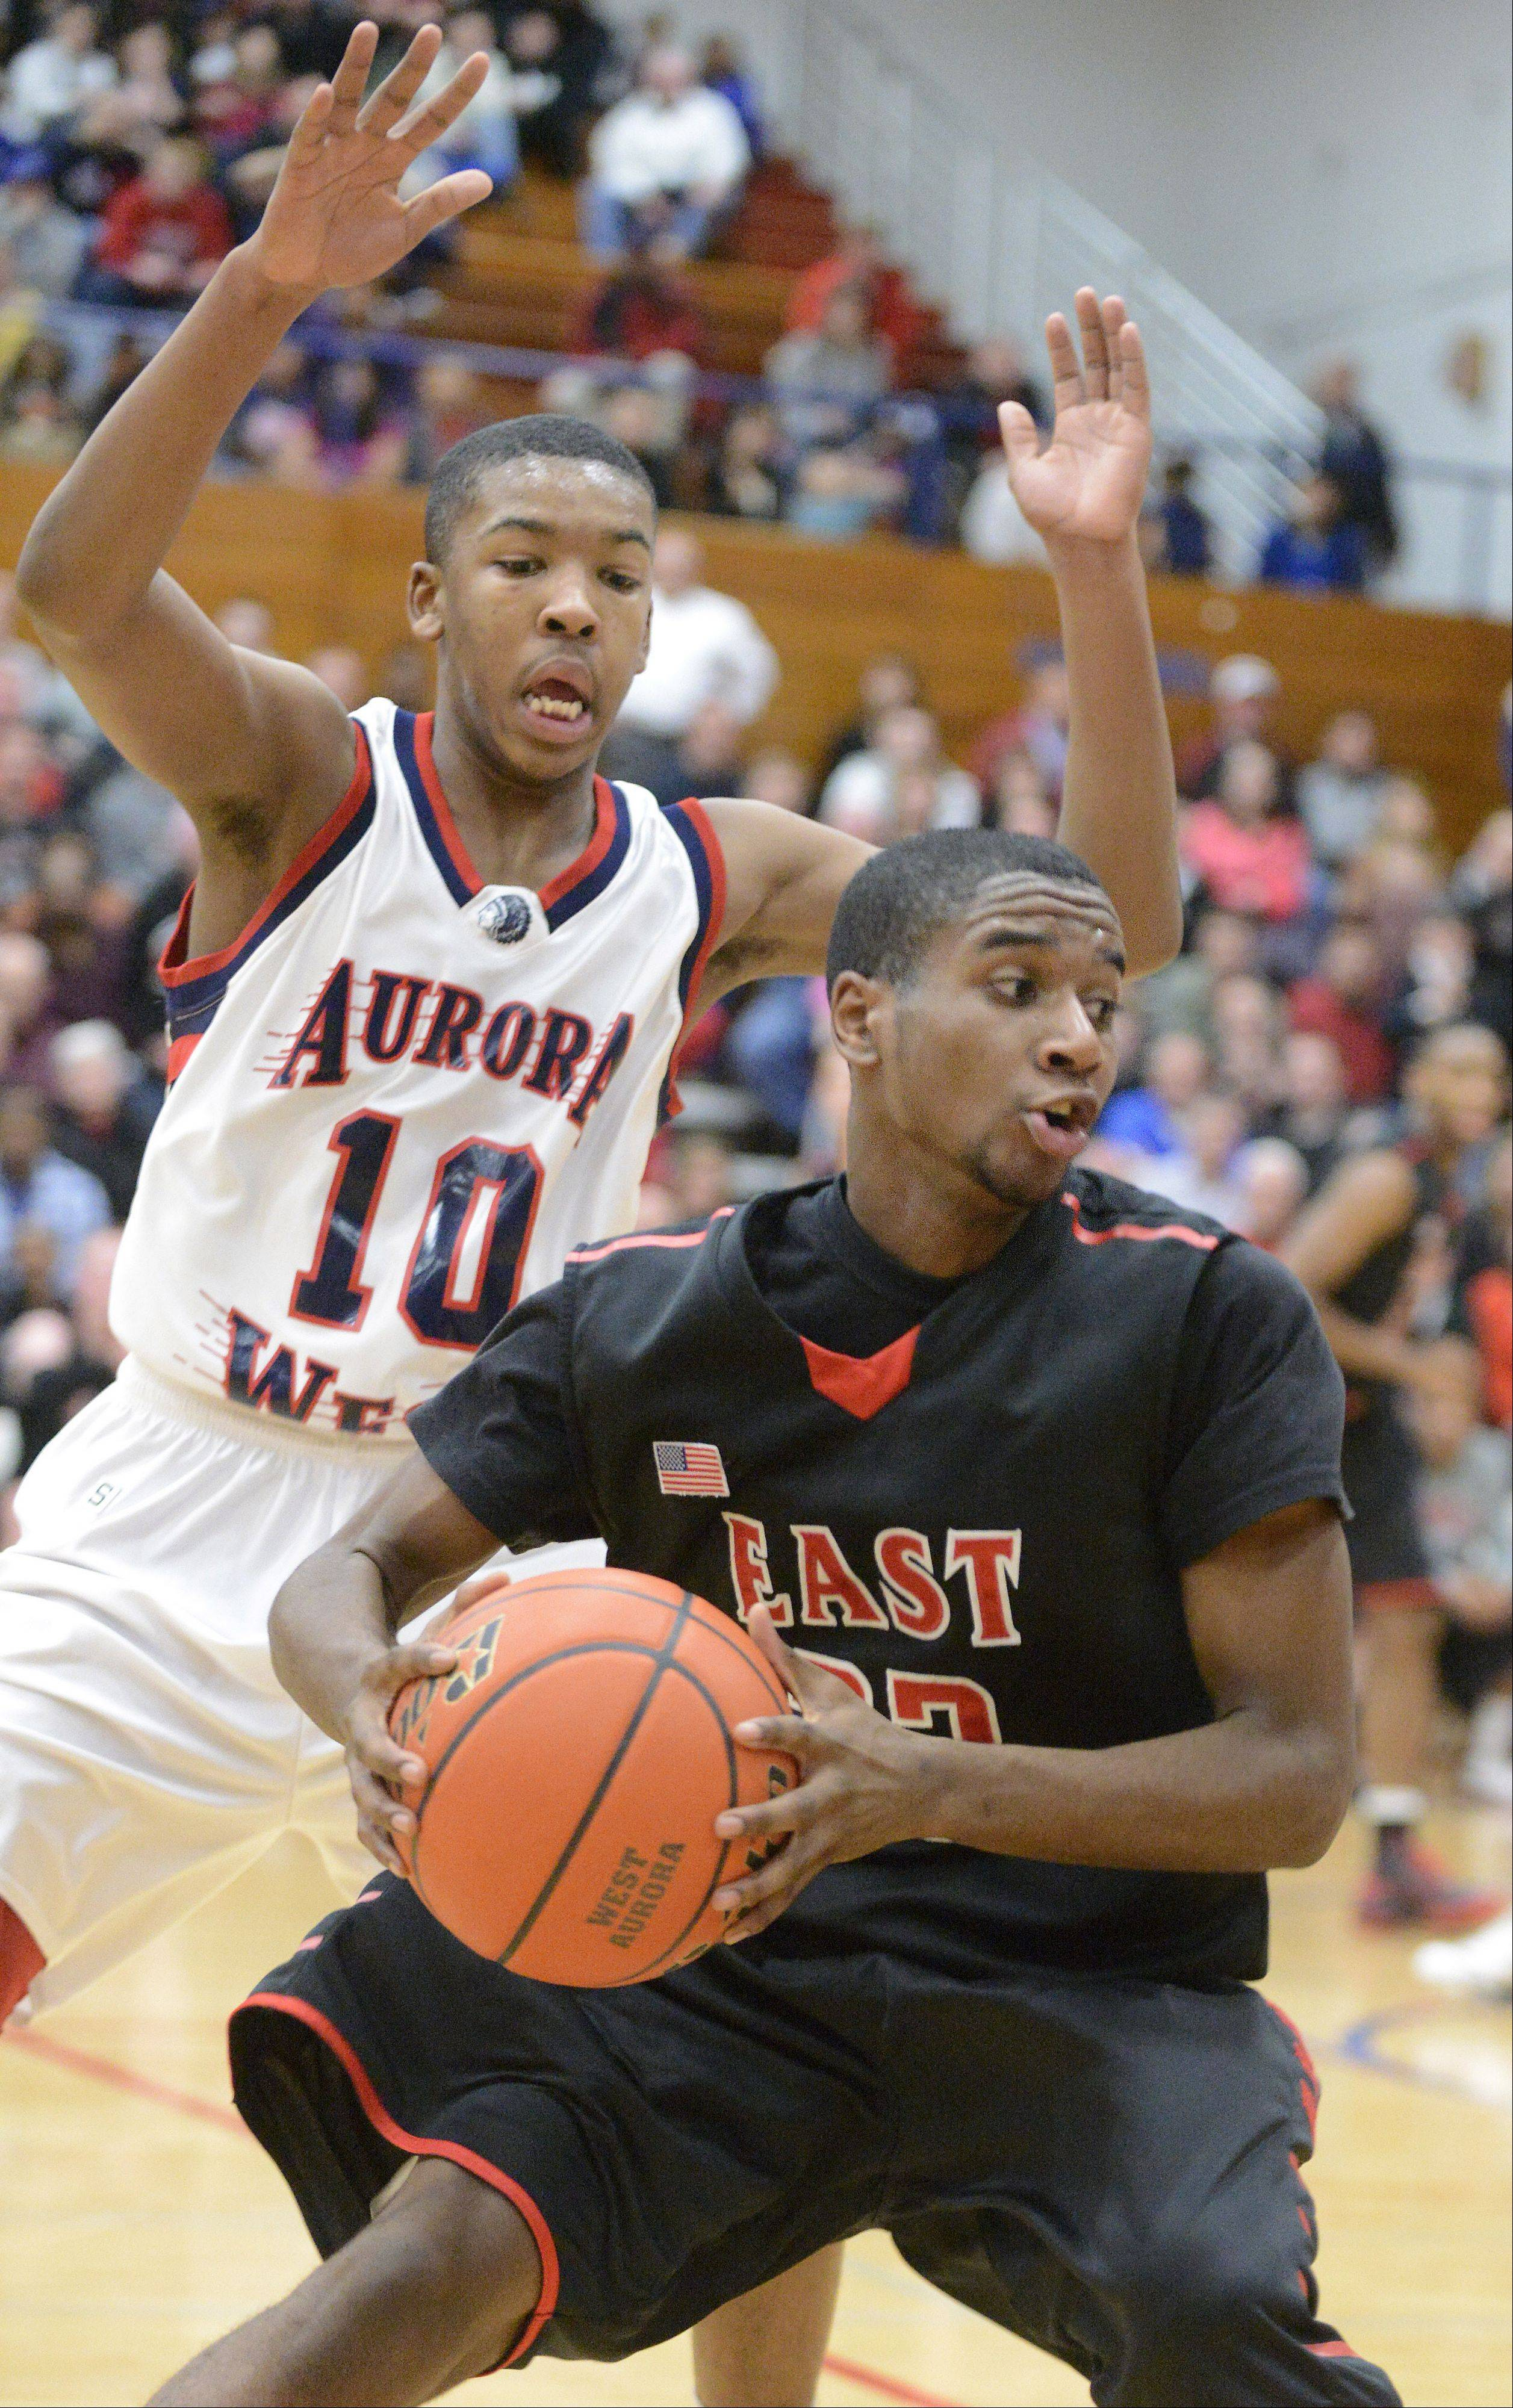 Glenbard East's Jason Hill spins to avoid a block by West Aurora's Jontrell Walker in the second over time period on Wednesday, February 20. 2